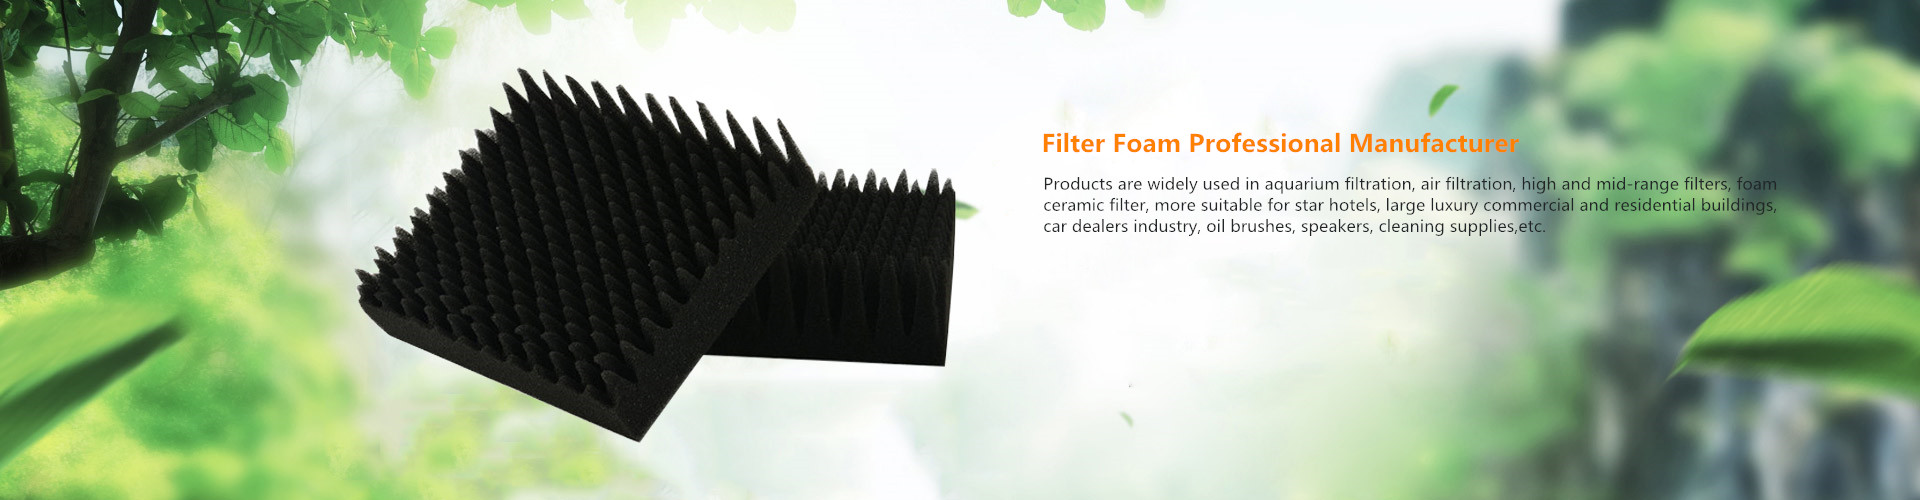 filter foam professional manufacturer